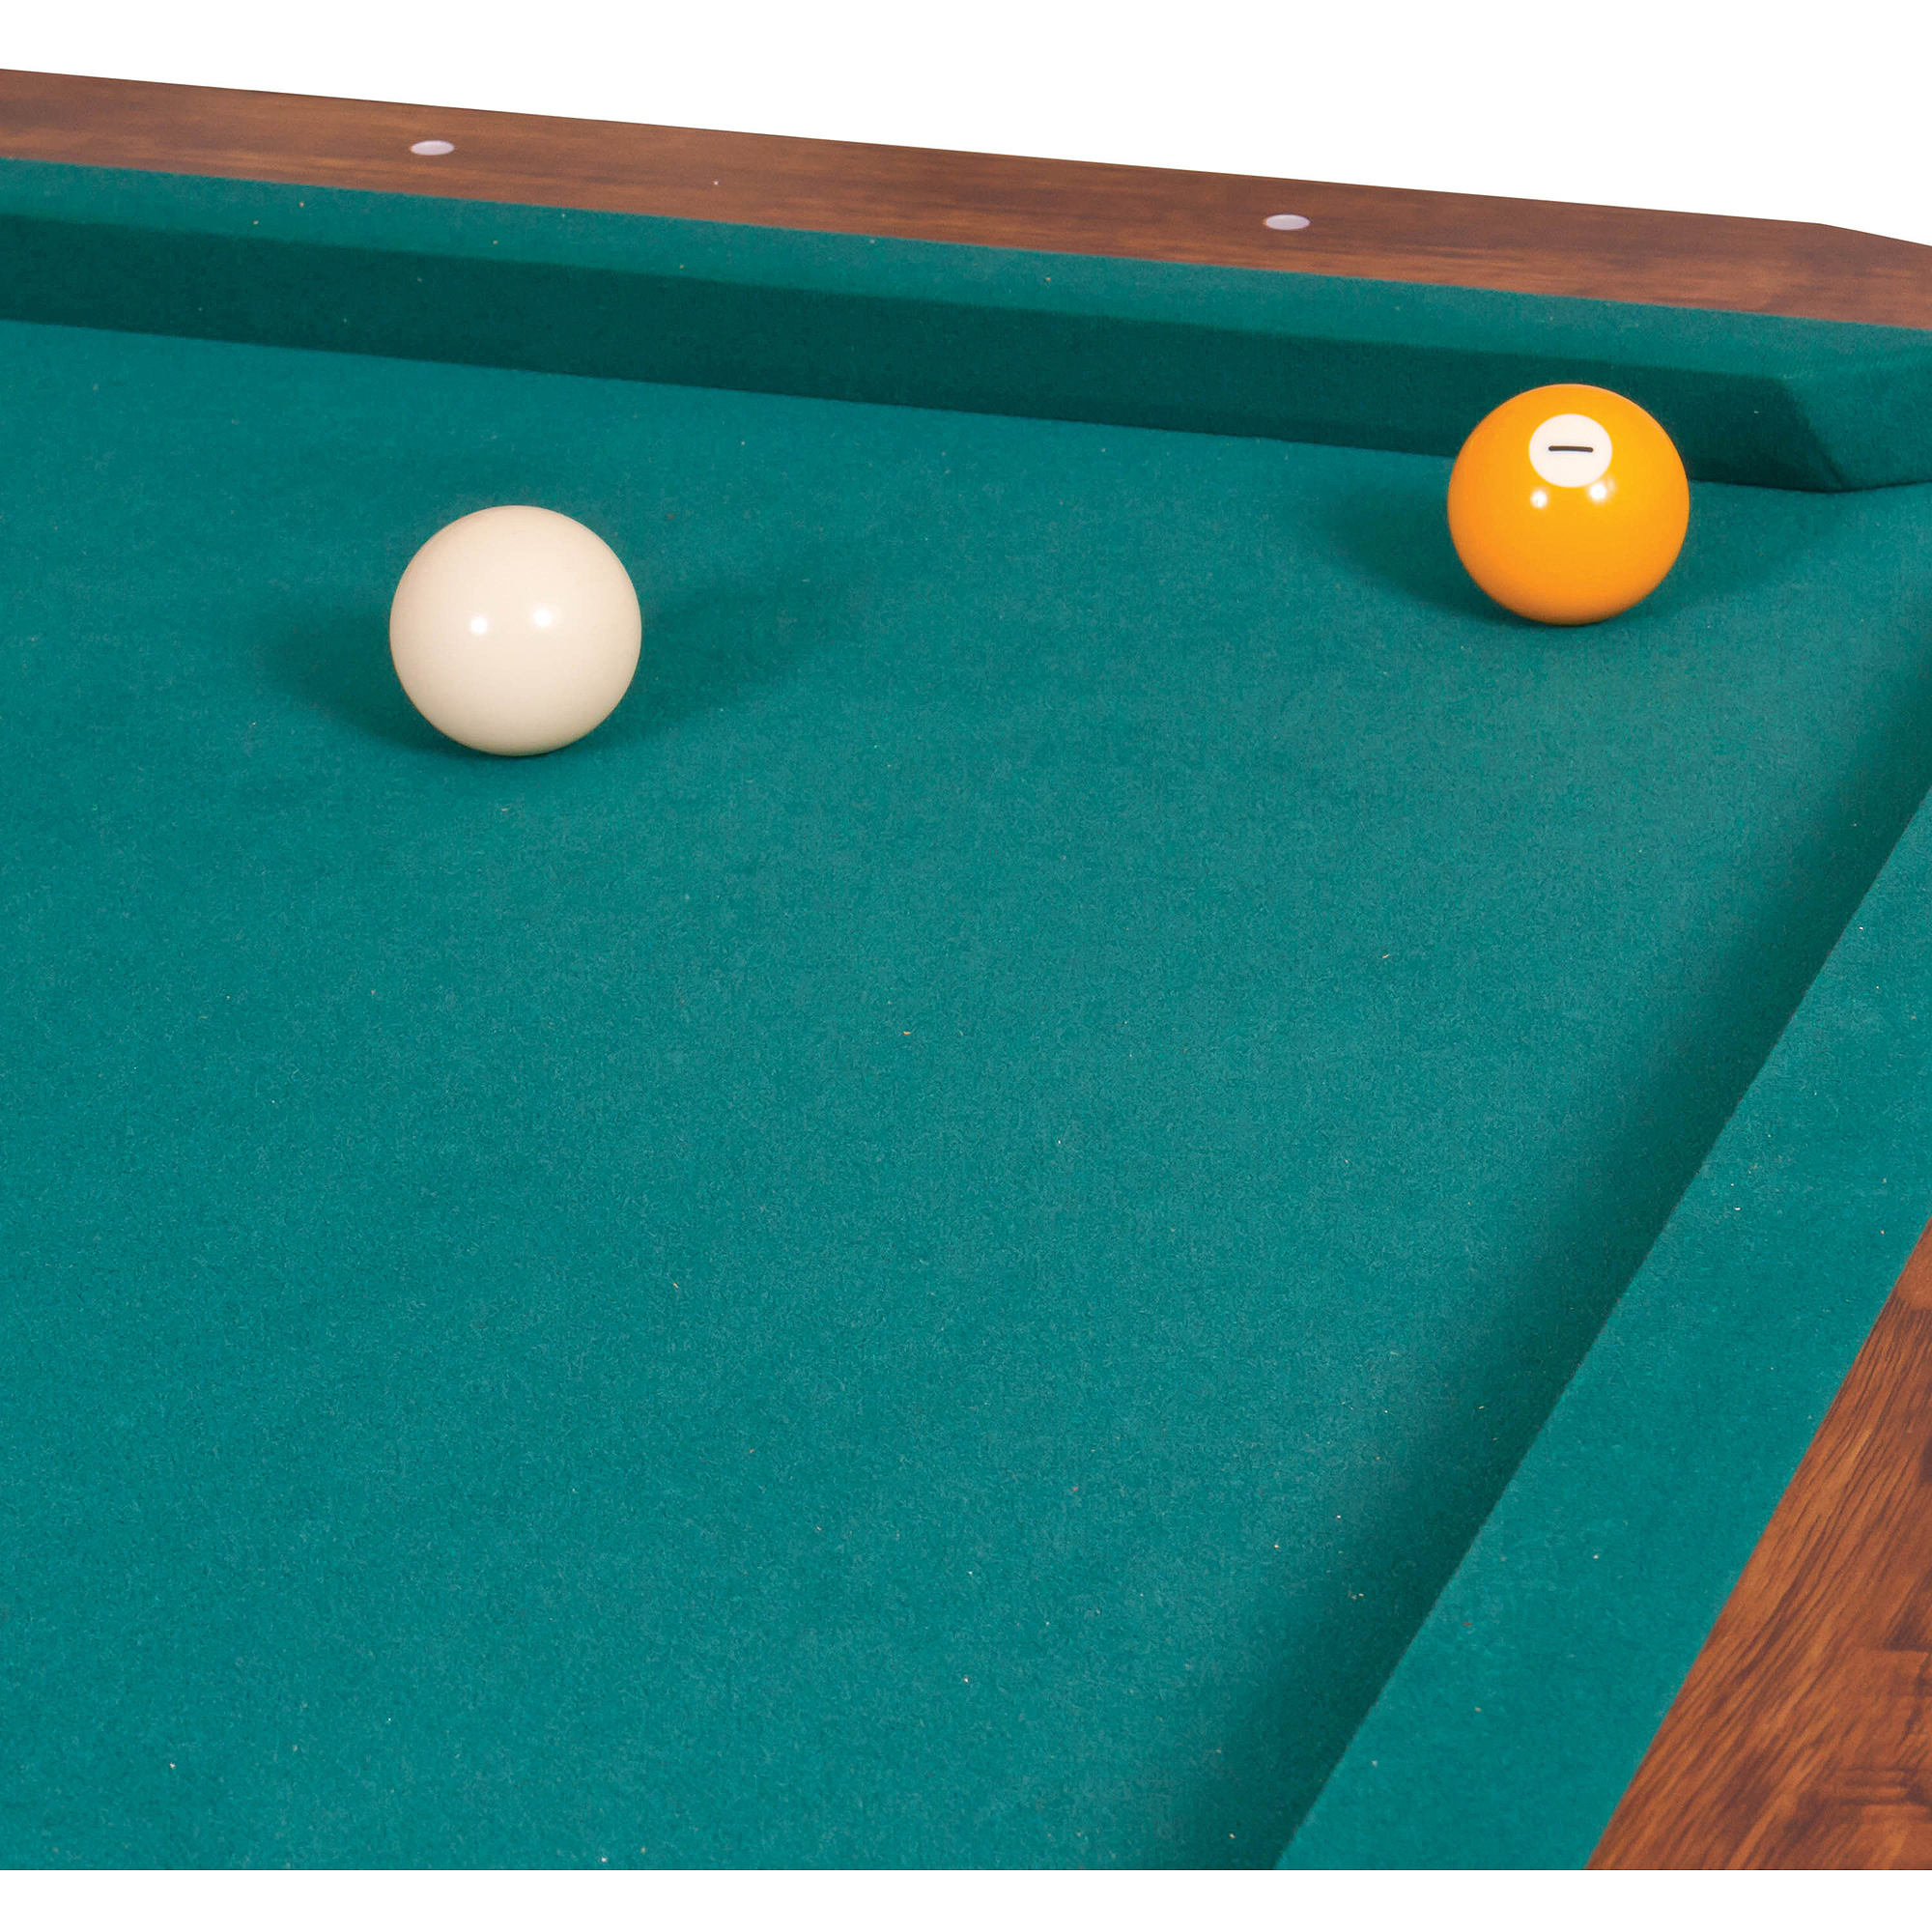 EastPoint Sports 87 Inch Brighton Billiard Pool Table Image 5 Of 7